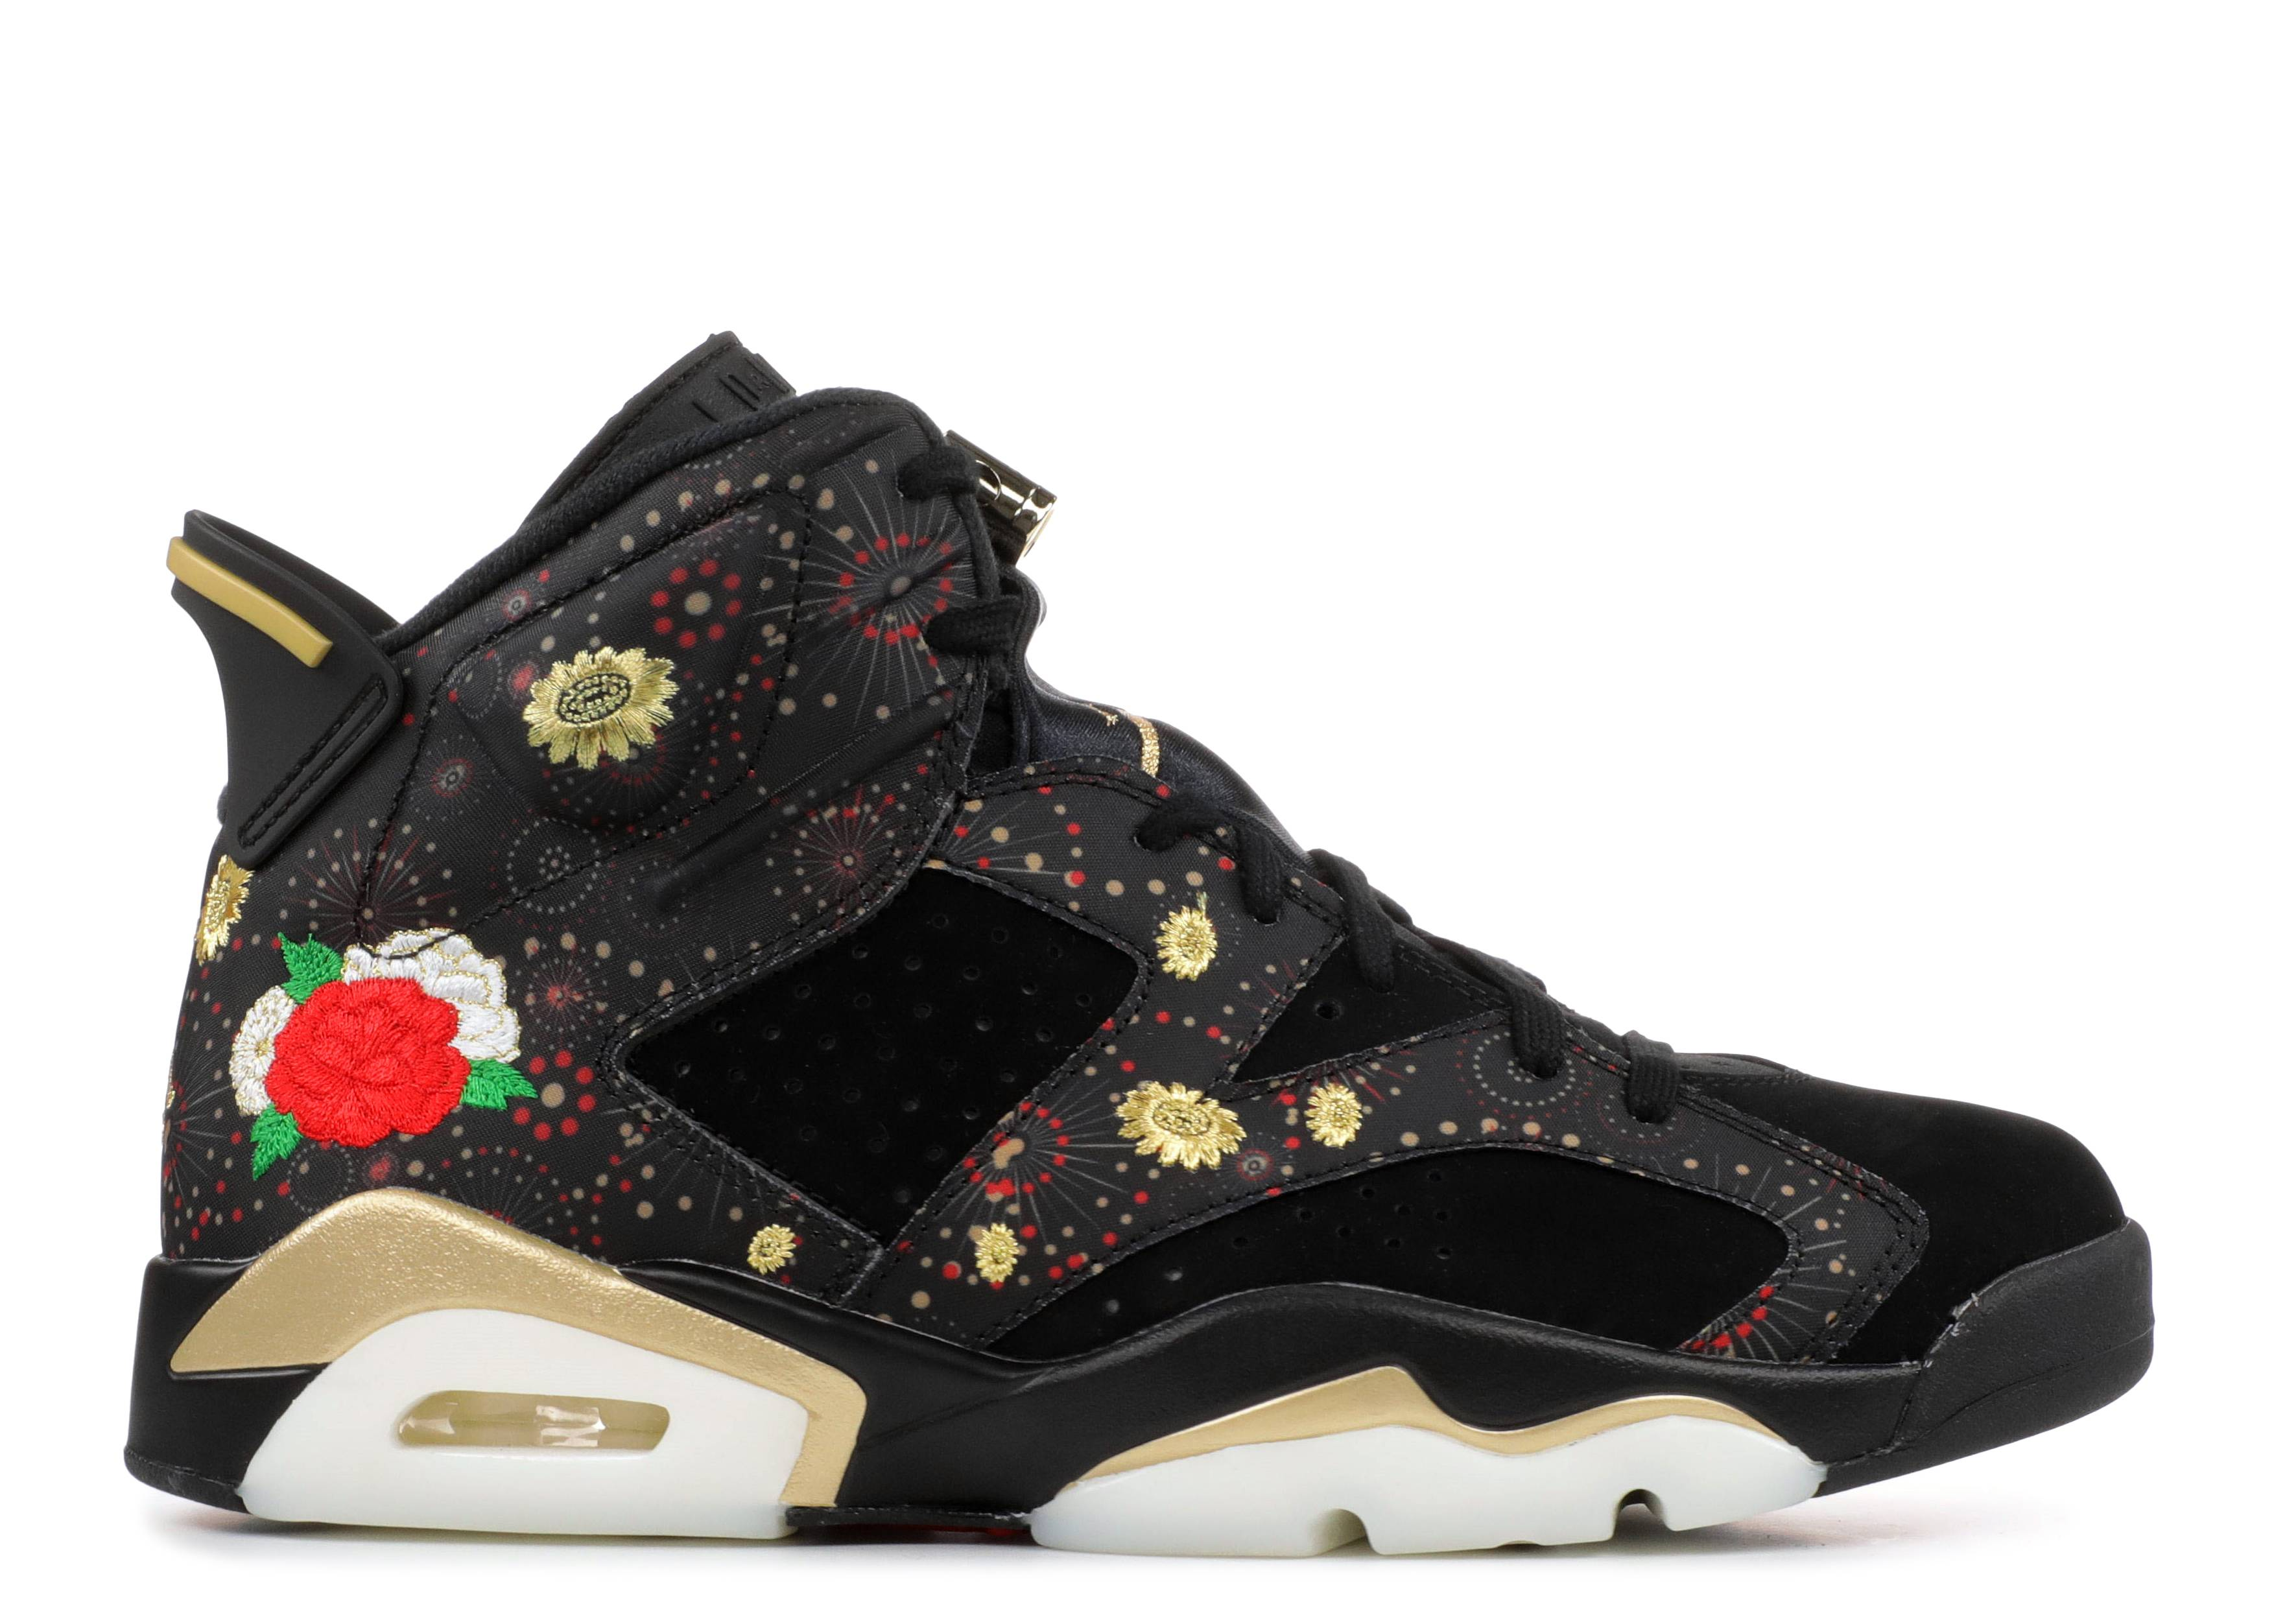 b4c1c11cd5a Air Jordan 6 Retro Cny